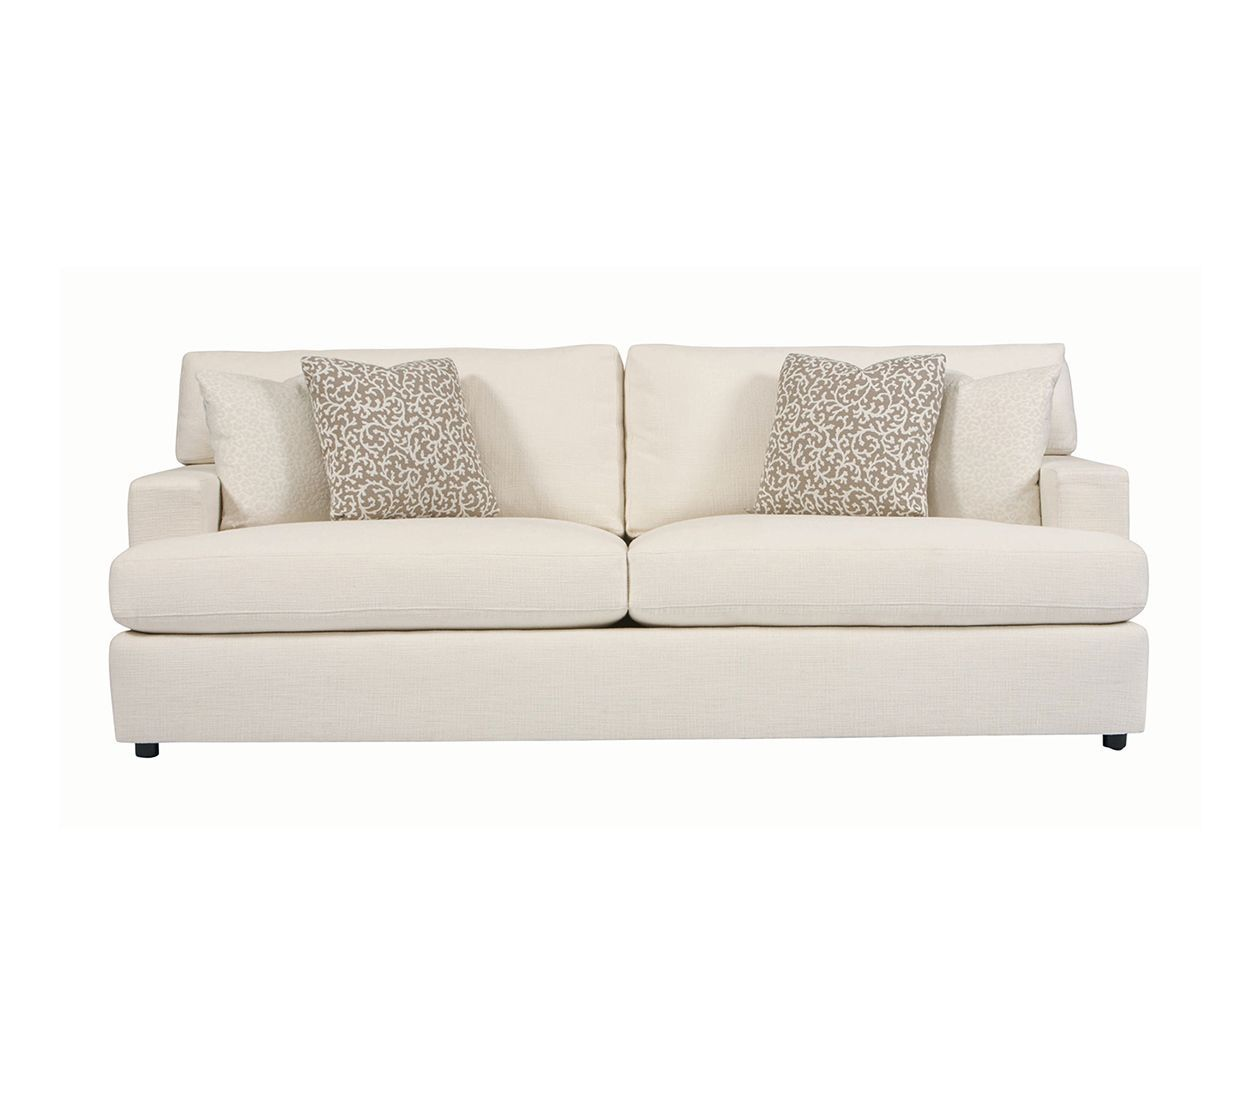 Bernhardt ryden sofa set collier 39 s furniture expo for Bernhardt furniture